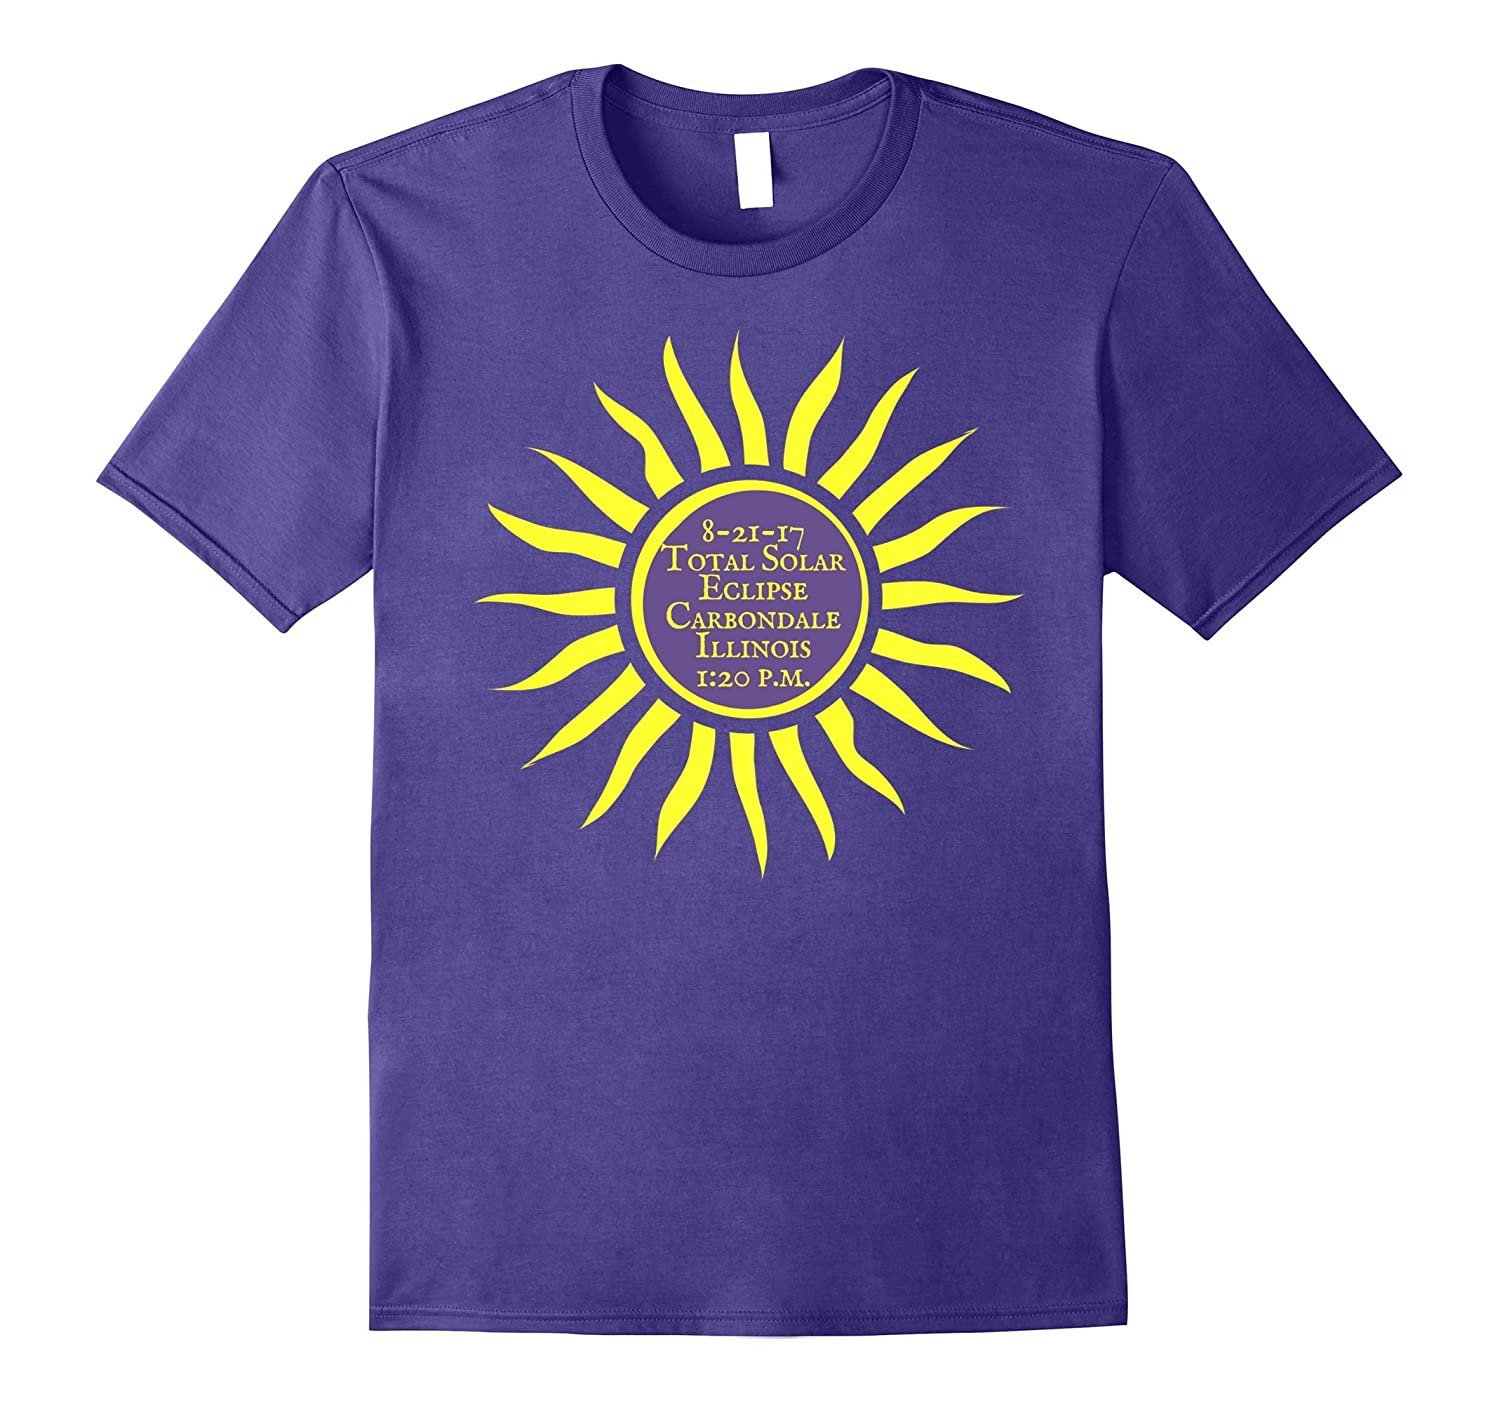 Carbondale IL Total Solar Eclipse T-Shirt, Aug.21 Sun Tee-BN